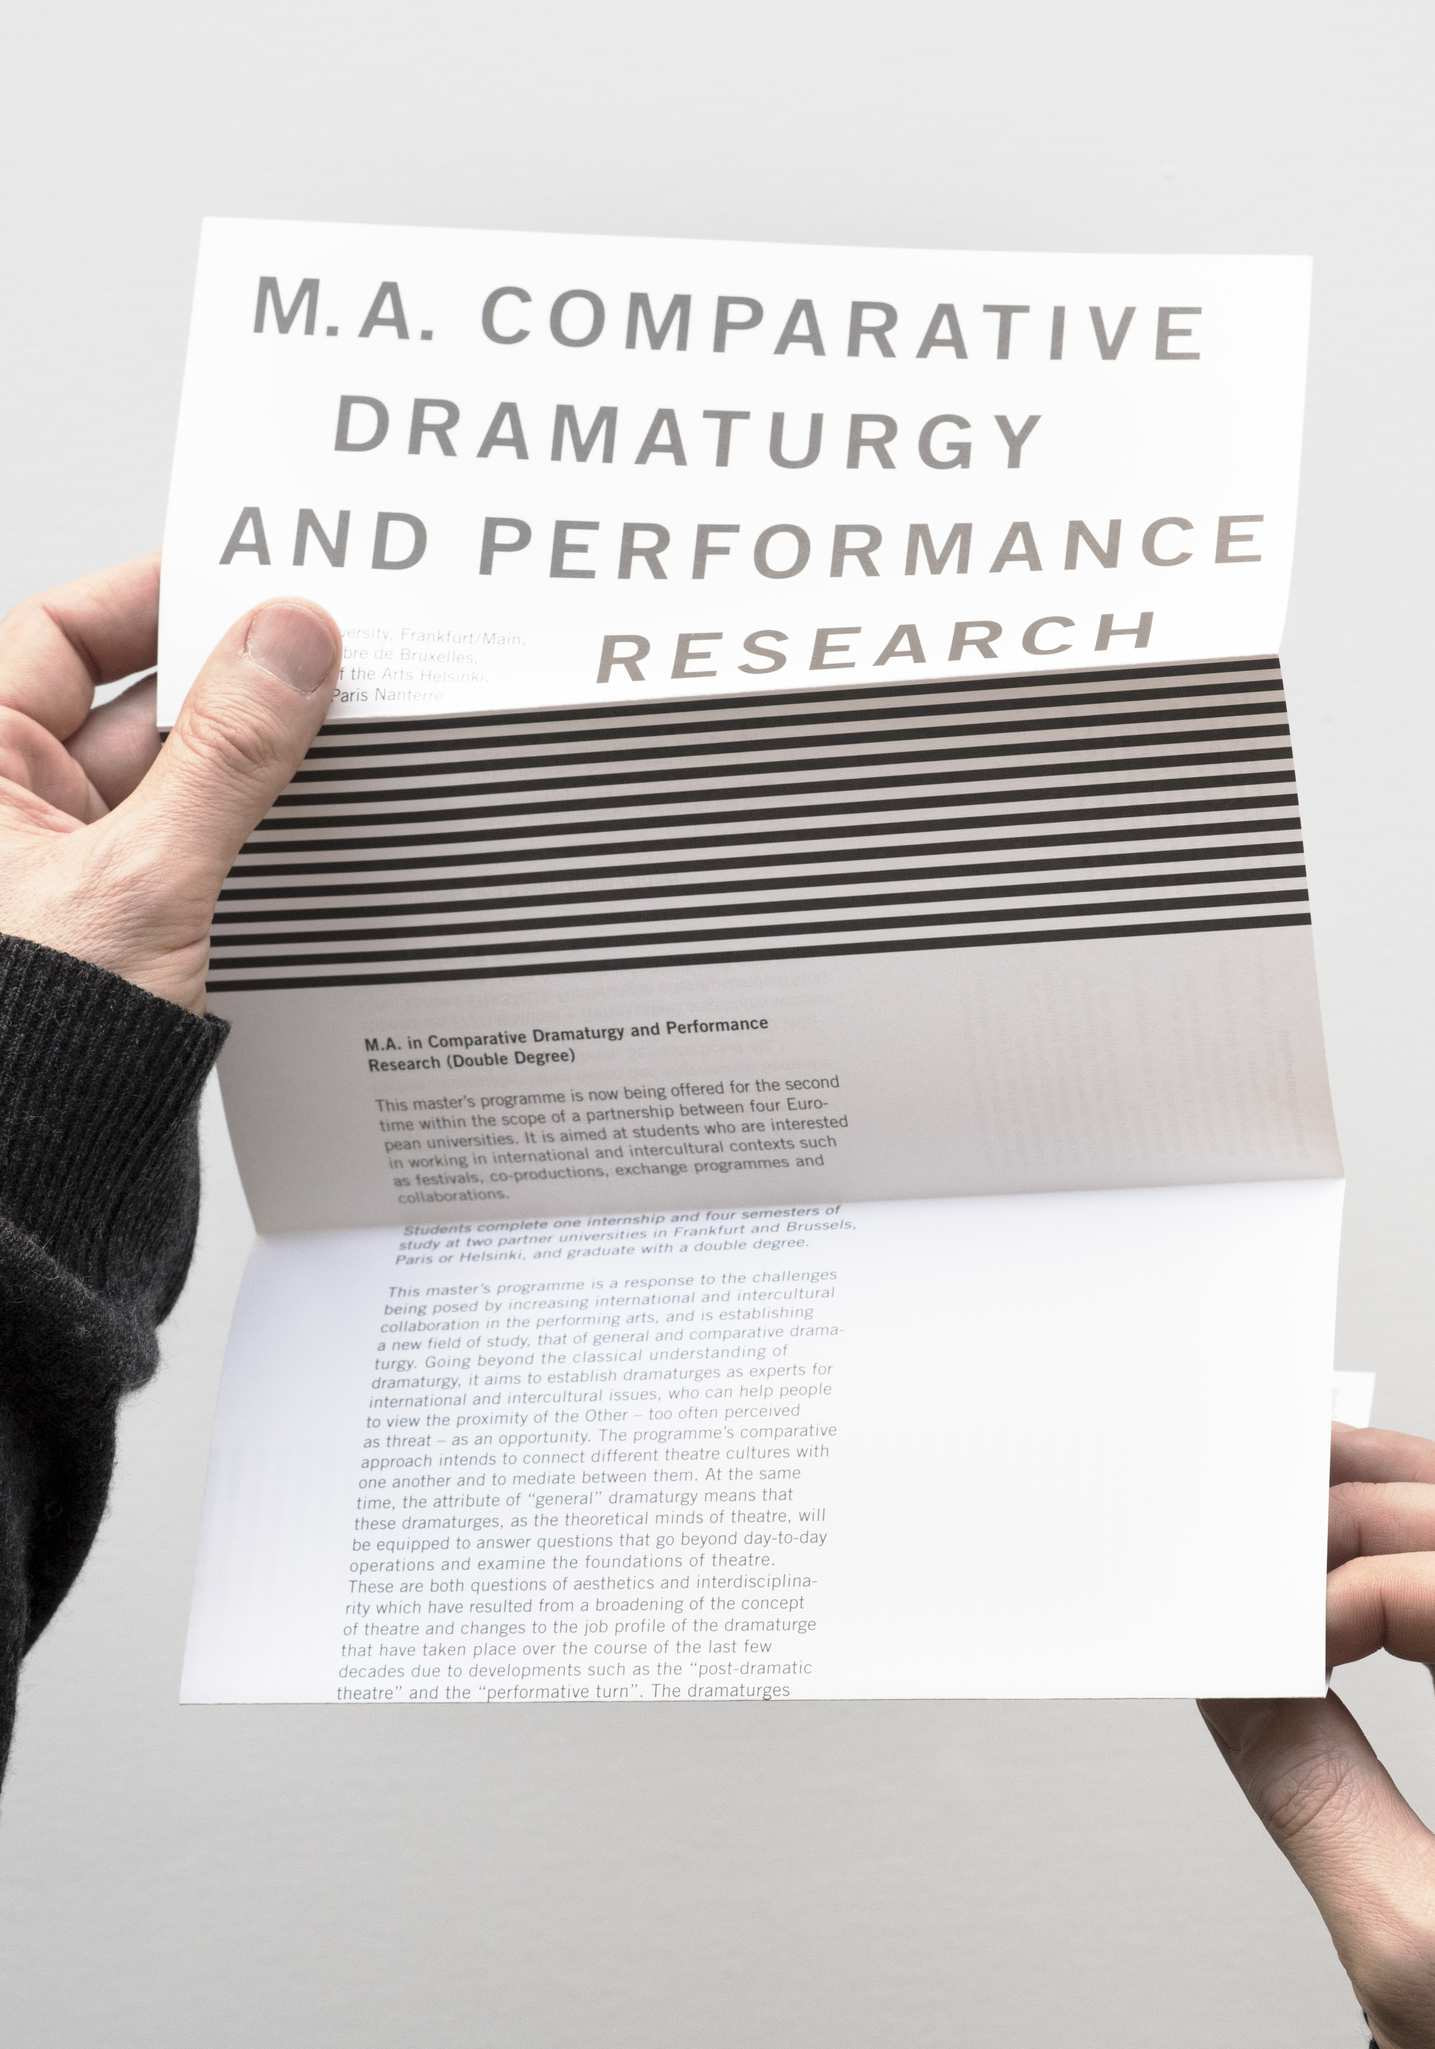 ma-comparative-dramaturgy-and-performance-research-flyer-2-1435x2049px